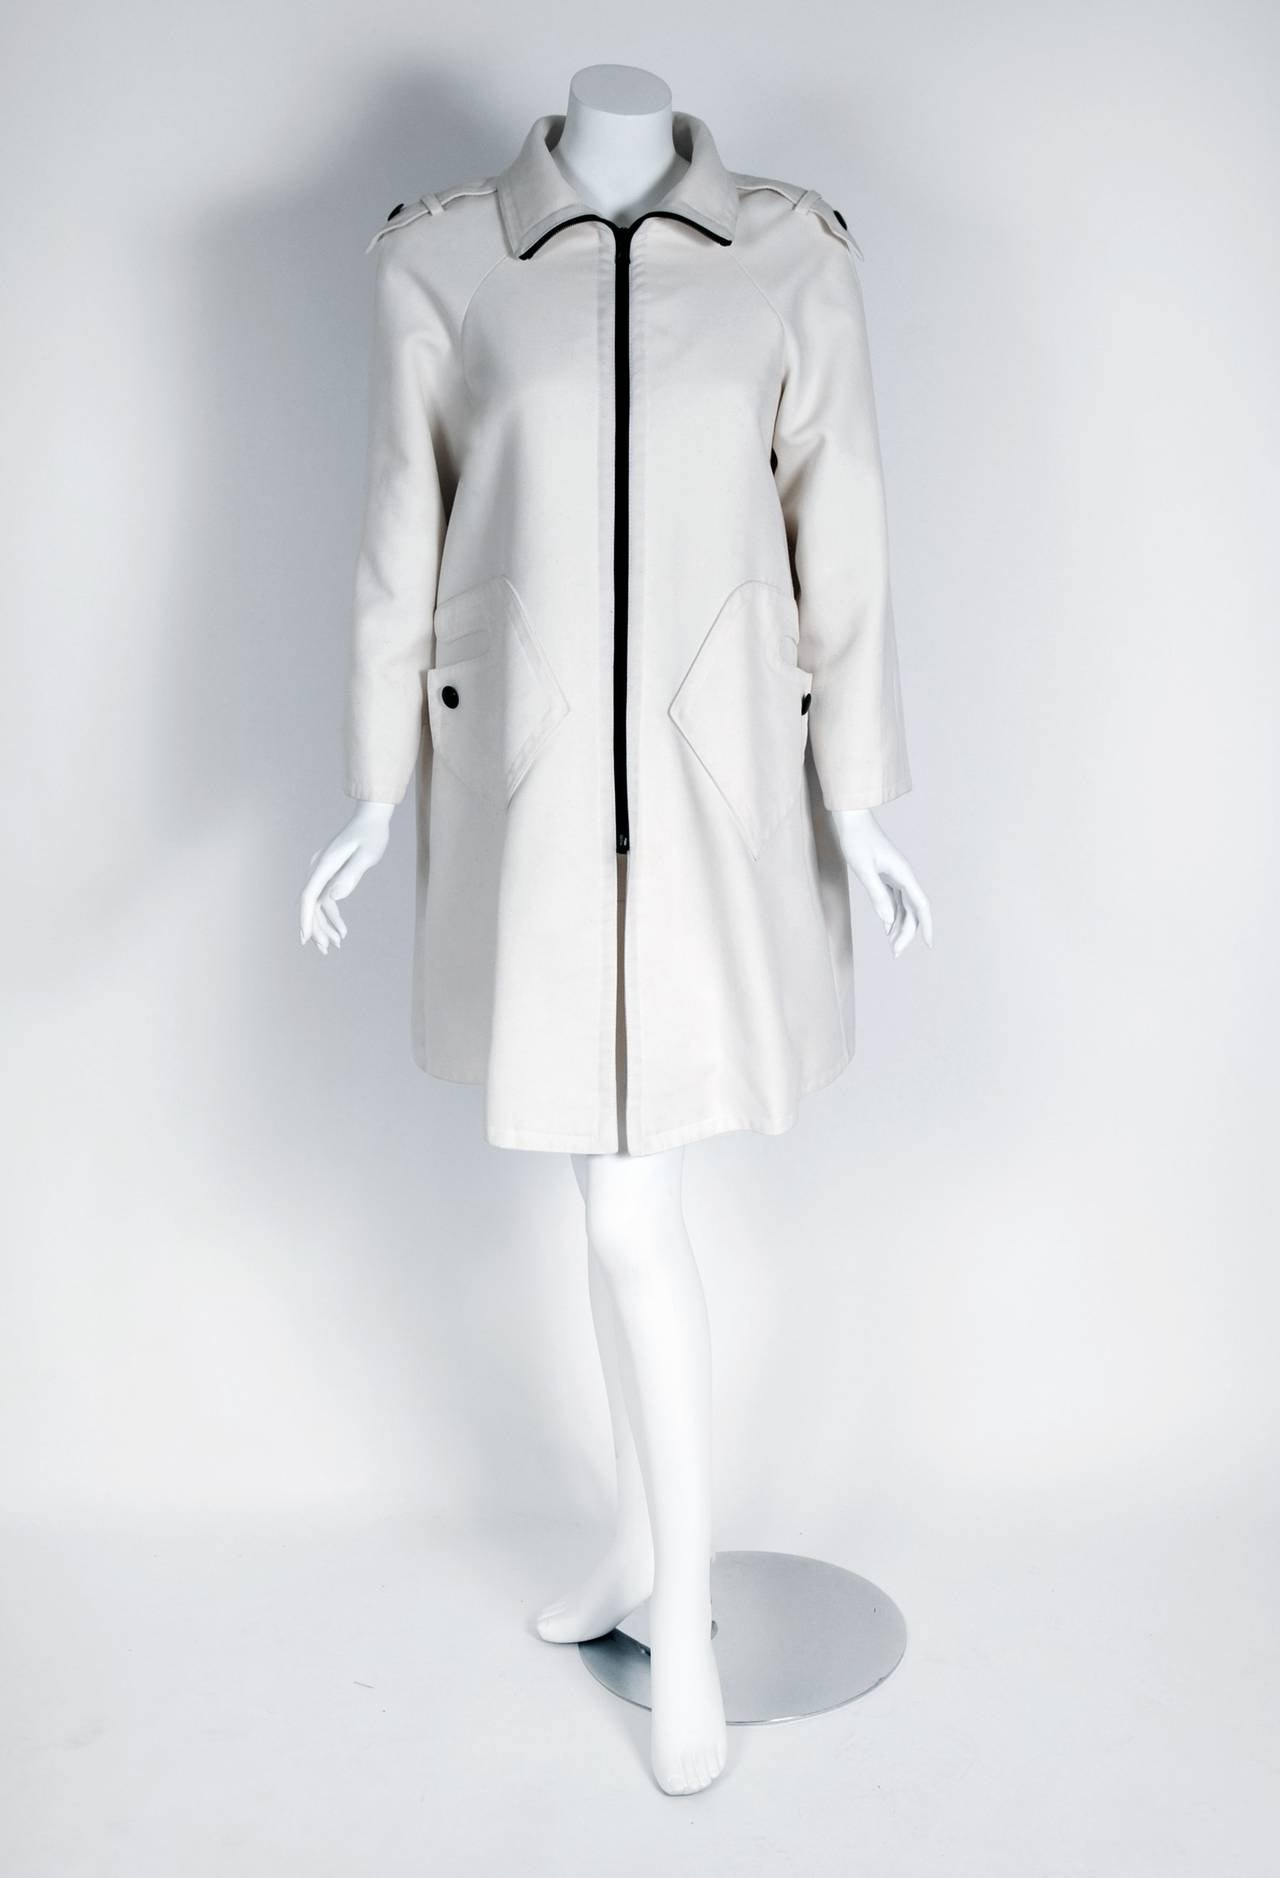 Marvelous 1968 Pierre Cardin designer jacket in a rich fully-lined white cotton twill. In 1951 Cardin opened his own couture house and by 1957, he started a ready-to-wear line; a bold move for a French couturier at the time. The look most associated